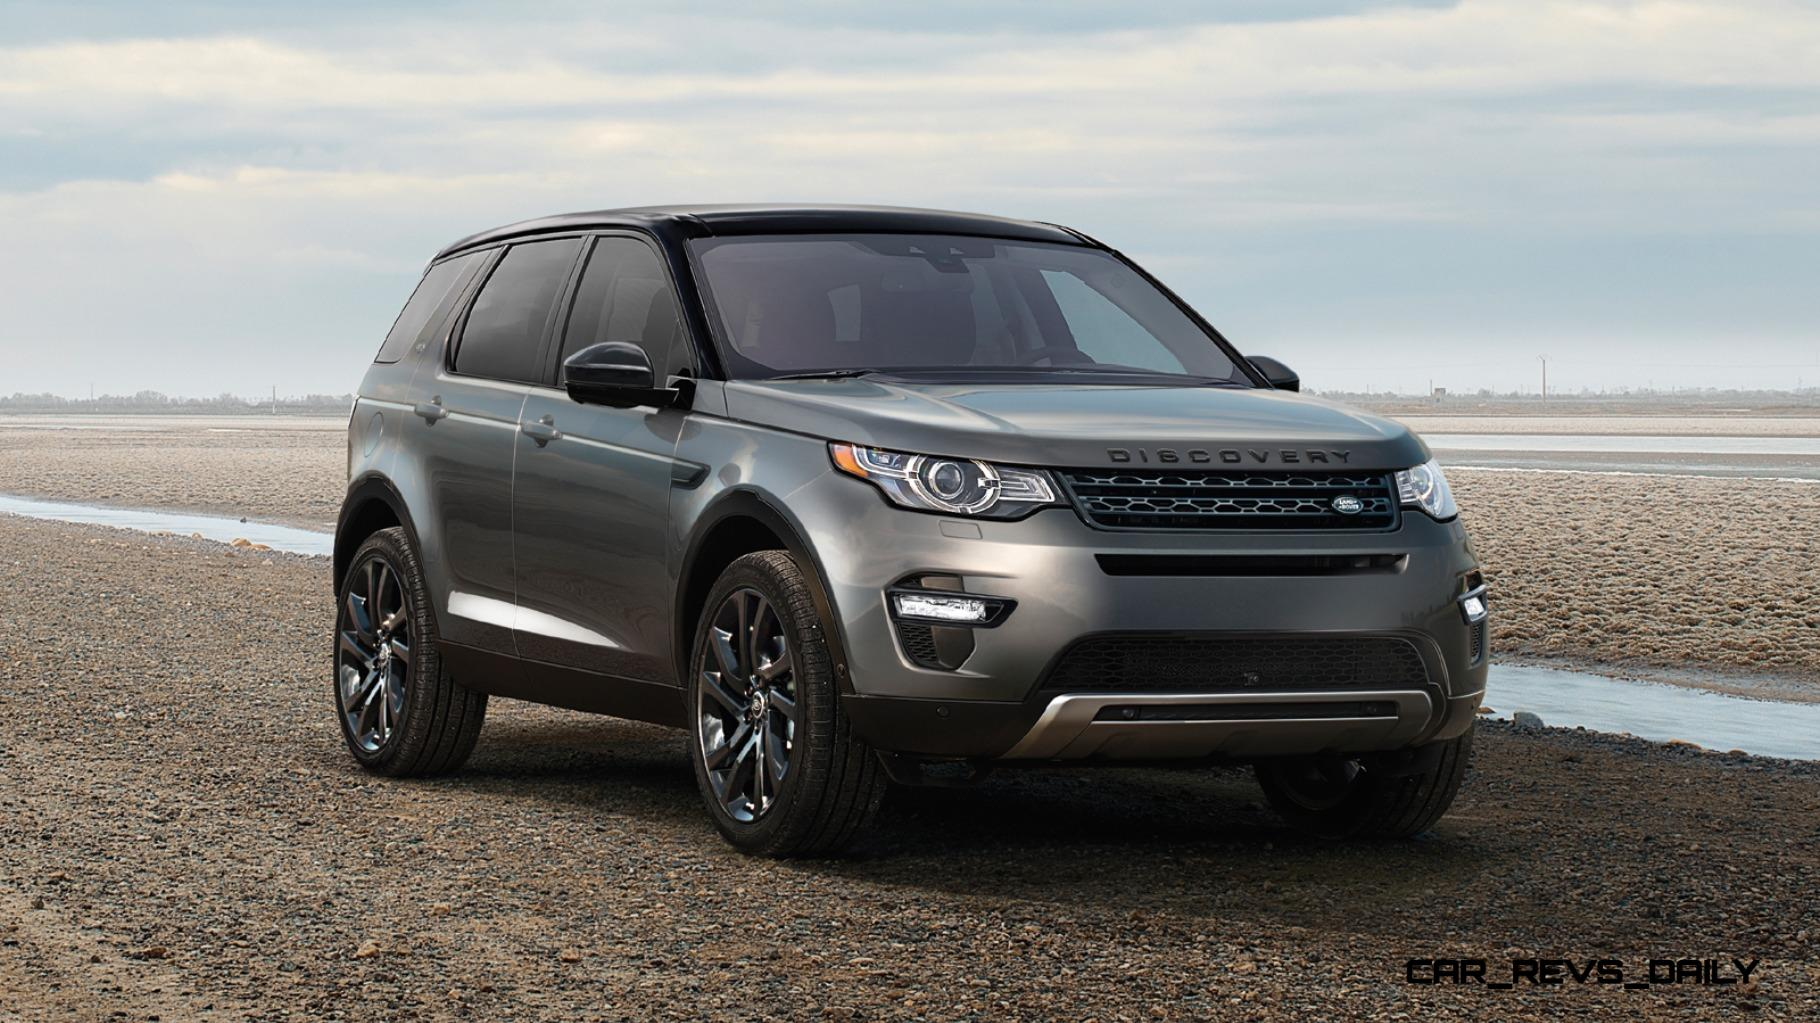 update1 2015 land rover discovery sport specs prices options and colors 65. Black Bedroom Furniture Sets. Home Design Ideas